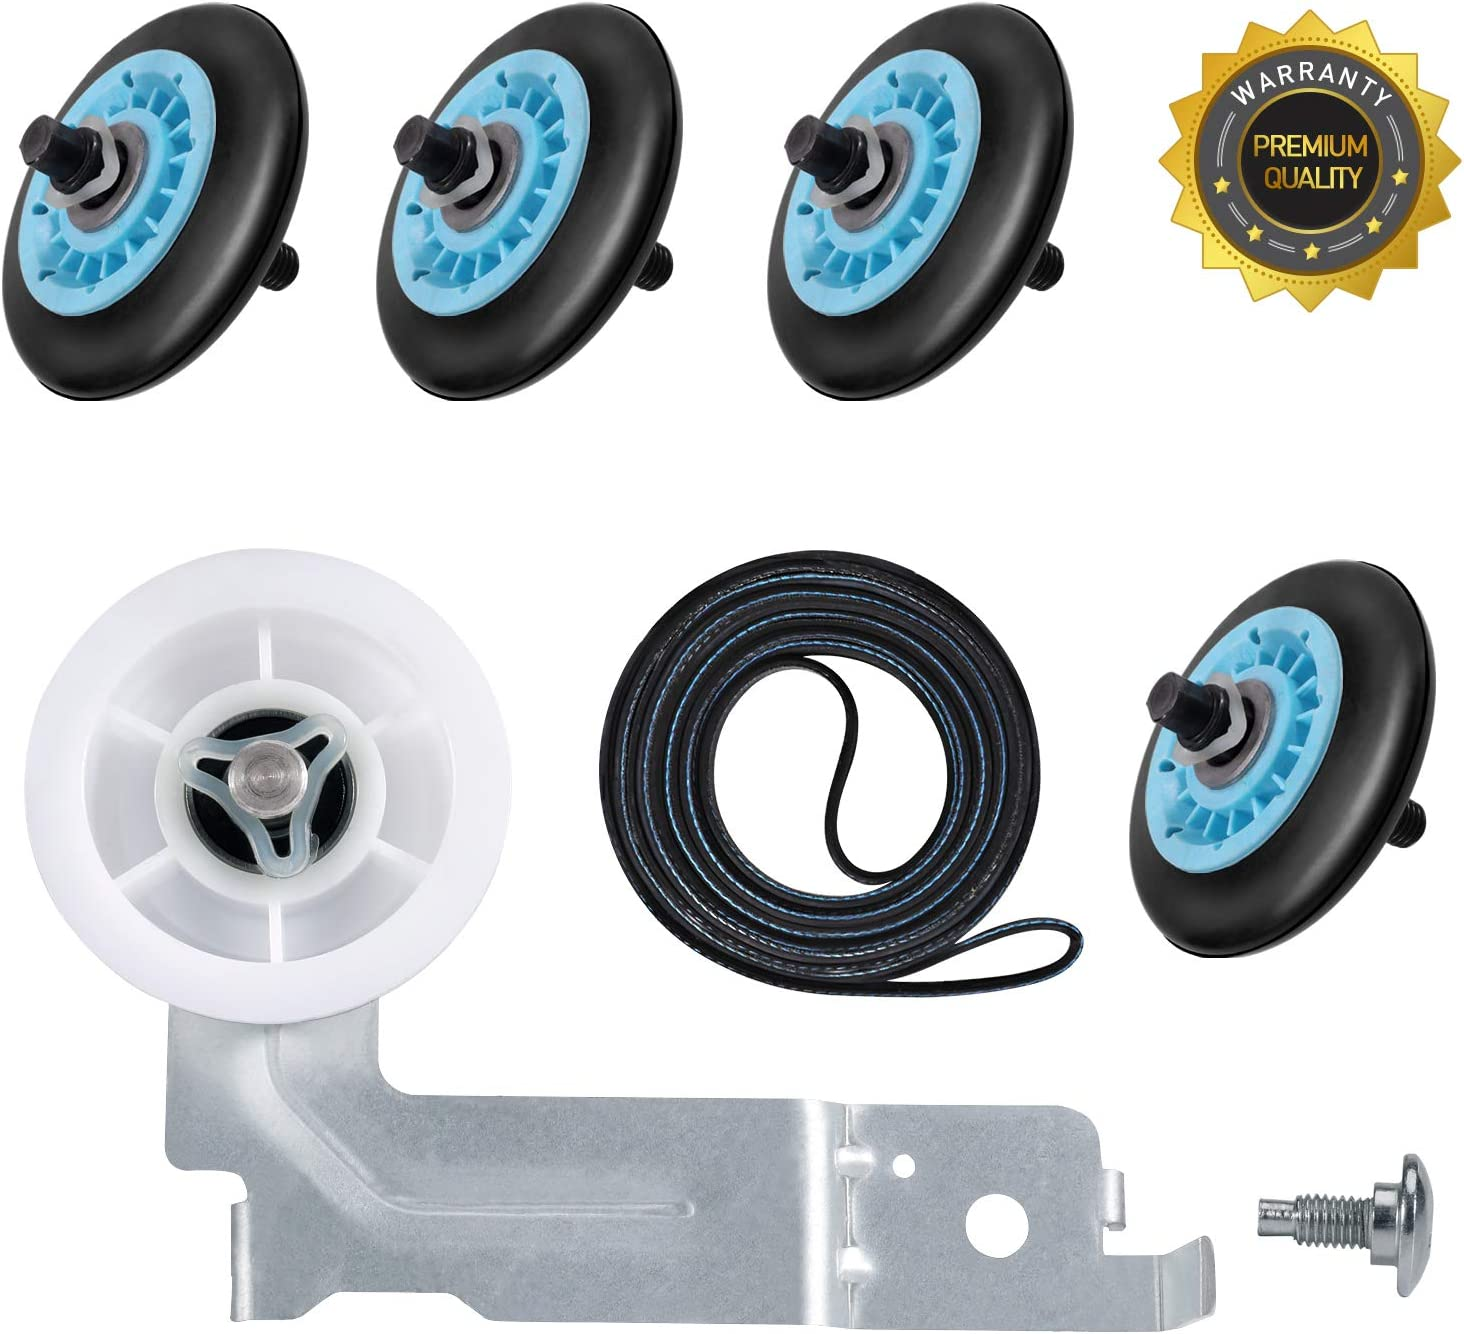 Dryer Repair Kit for Samsung, Dryer Idler Pulley (DC93-00634A) [Dual Ball Bearing], Dryer Belt (6602-001655), Dryer Roller (DC97-16782A), Replace AP5325135 AP4373659 AP6038887 PS4221885 PS4133825